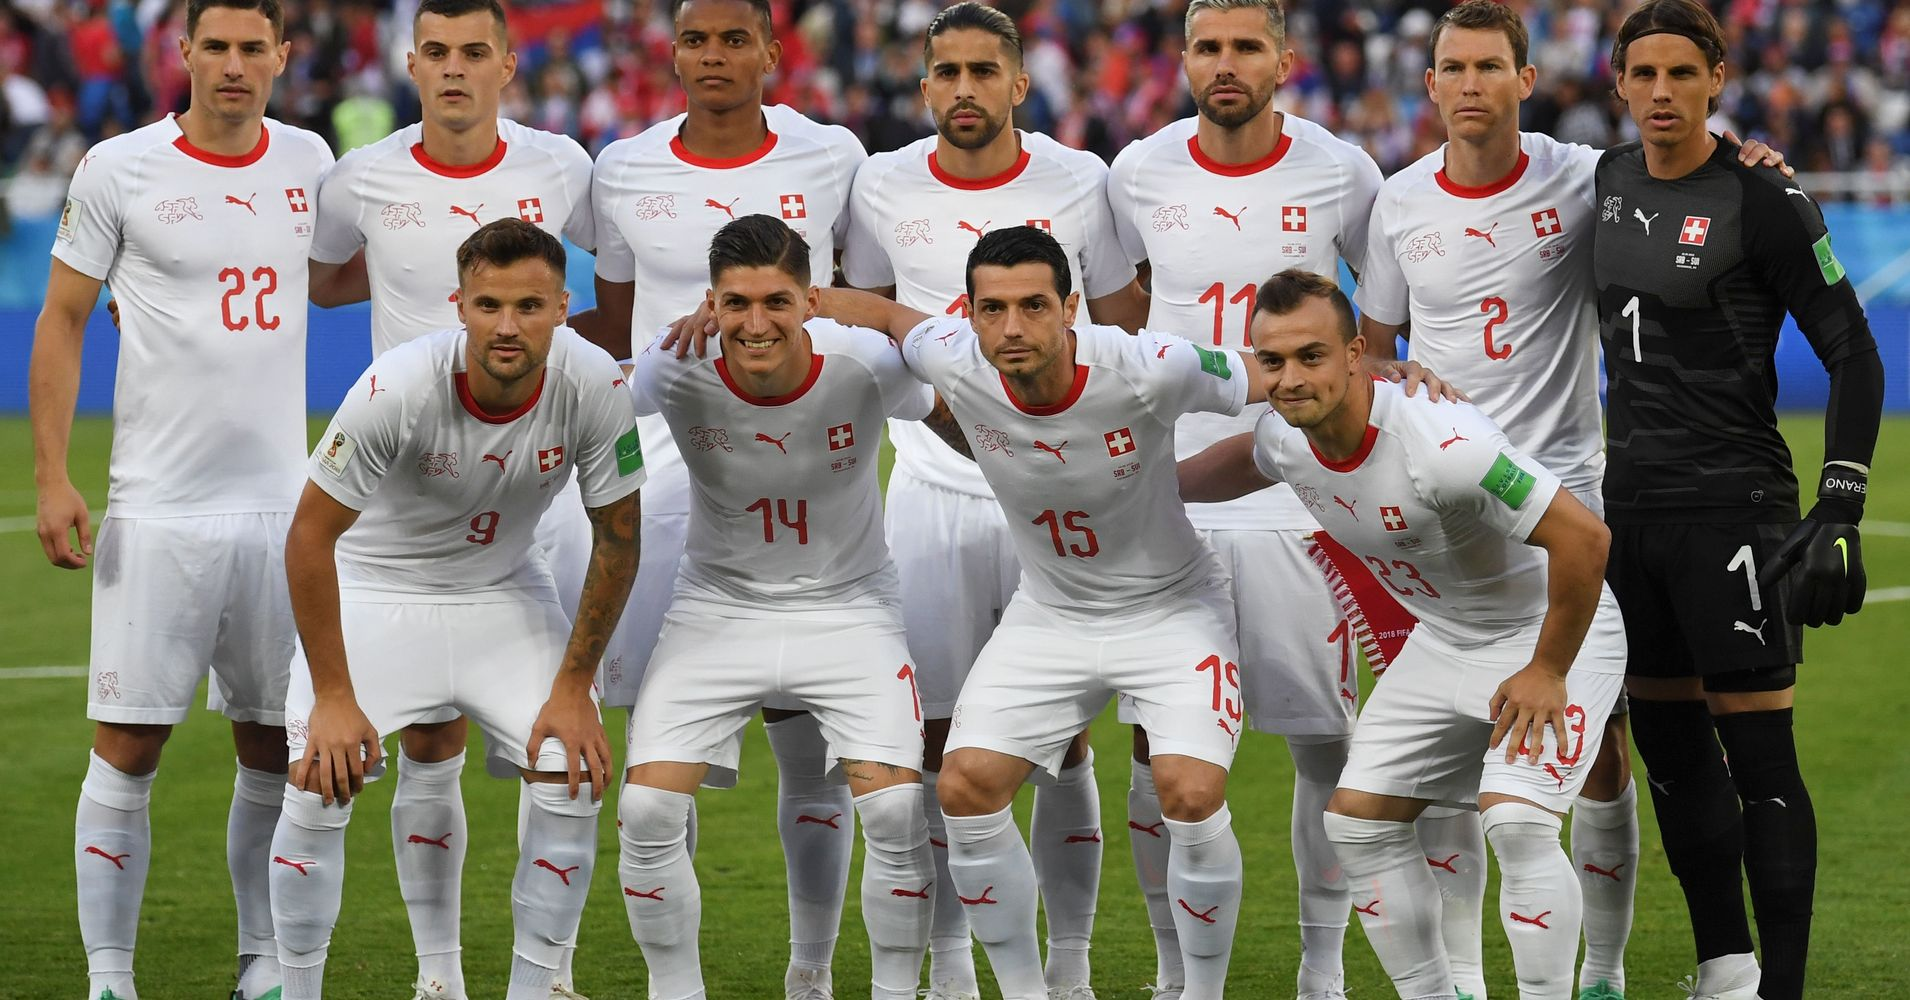 6a0a7cce8e5 Switzerland's World Cup Team Sits At The Heart Of Europe's National  Identity Panic | HuffPost